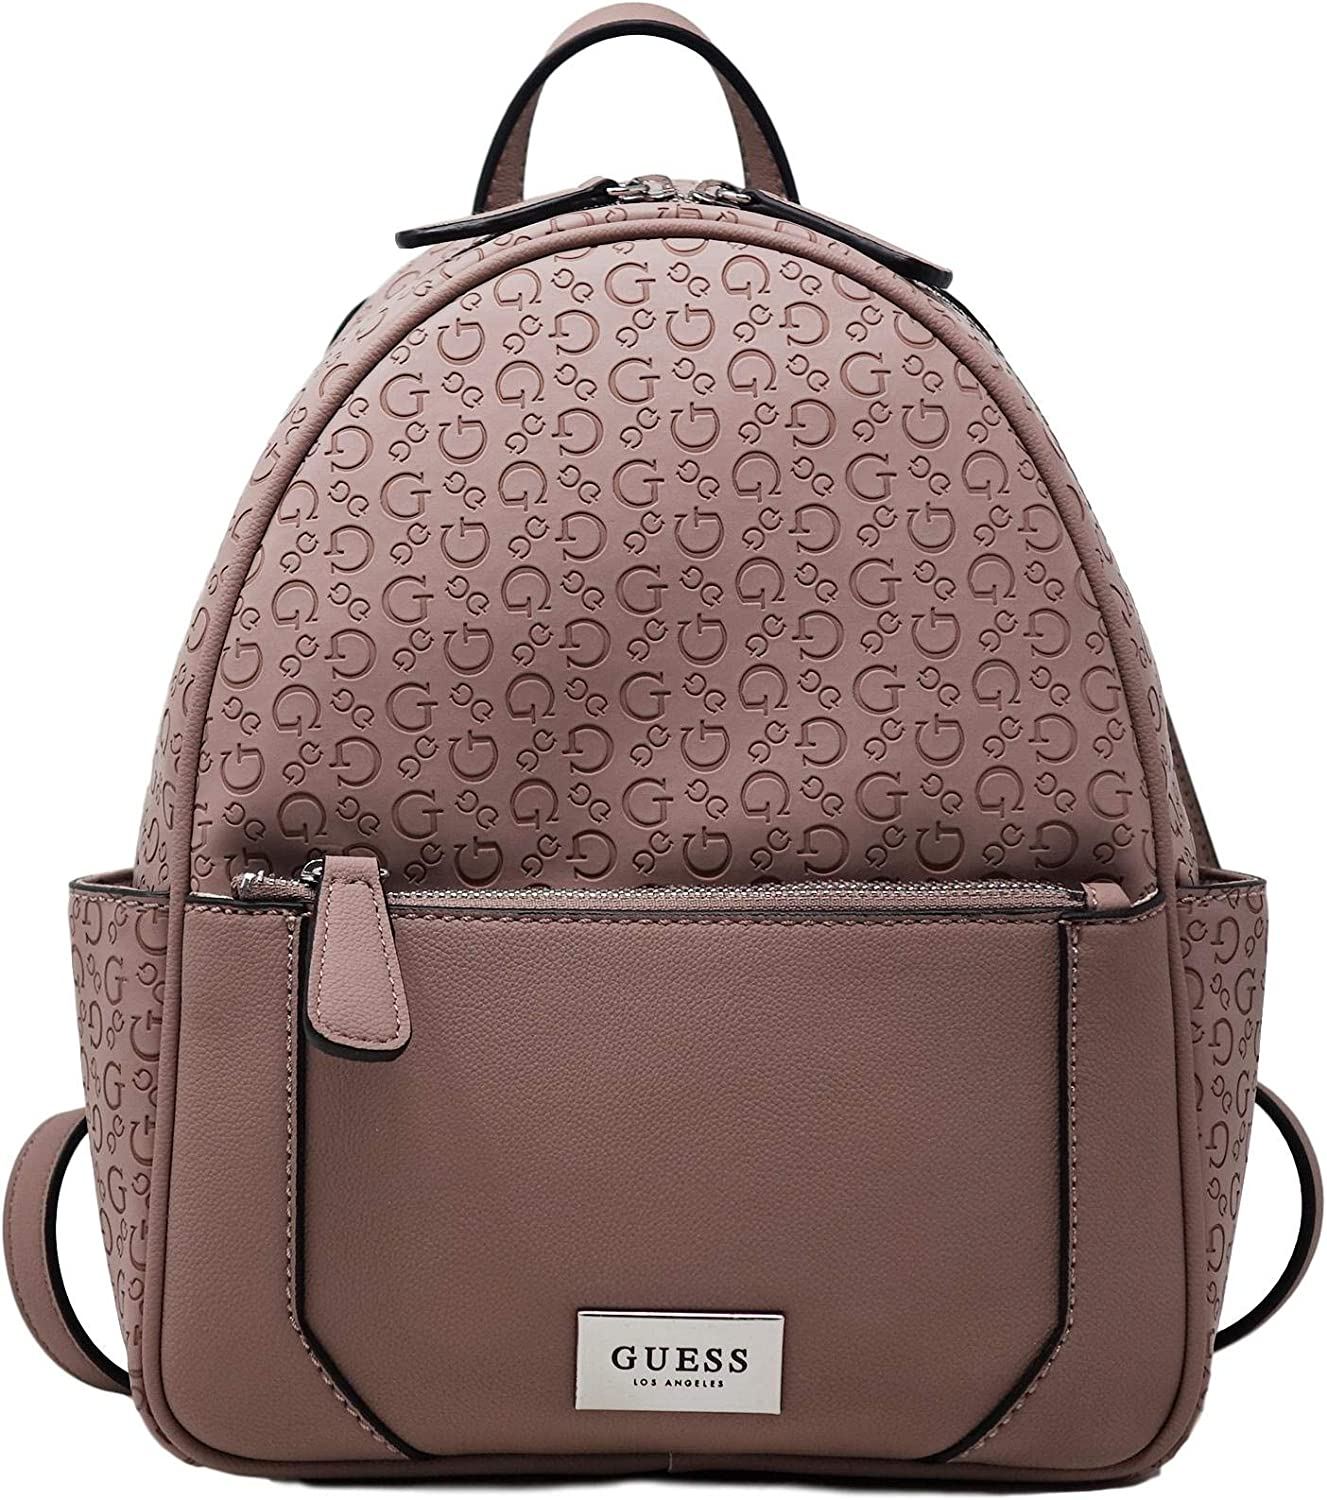 Guess Logo Insight Small Backpack Bag Handbag